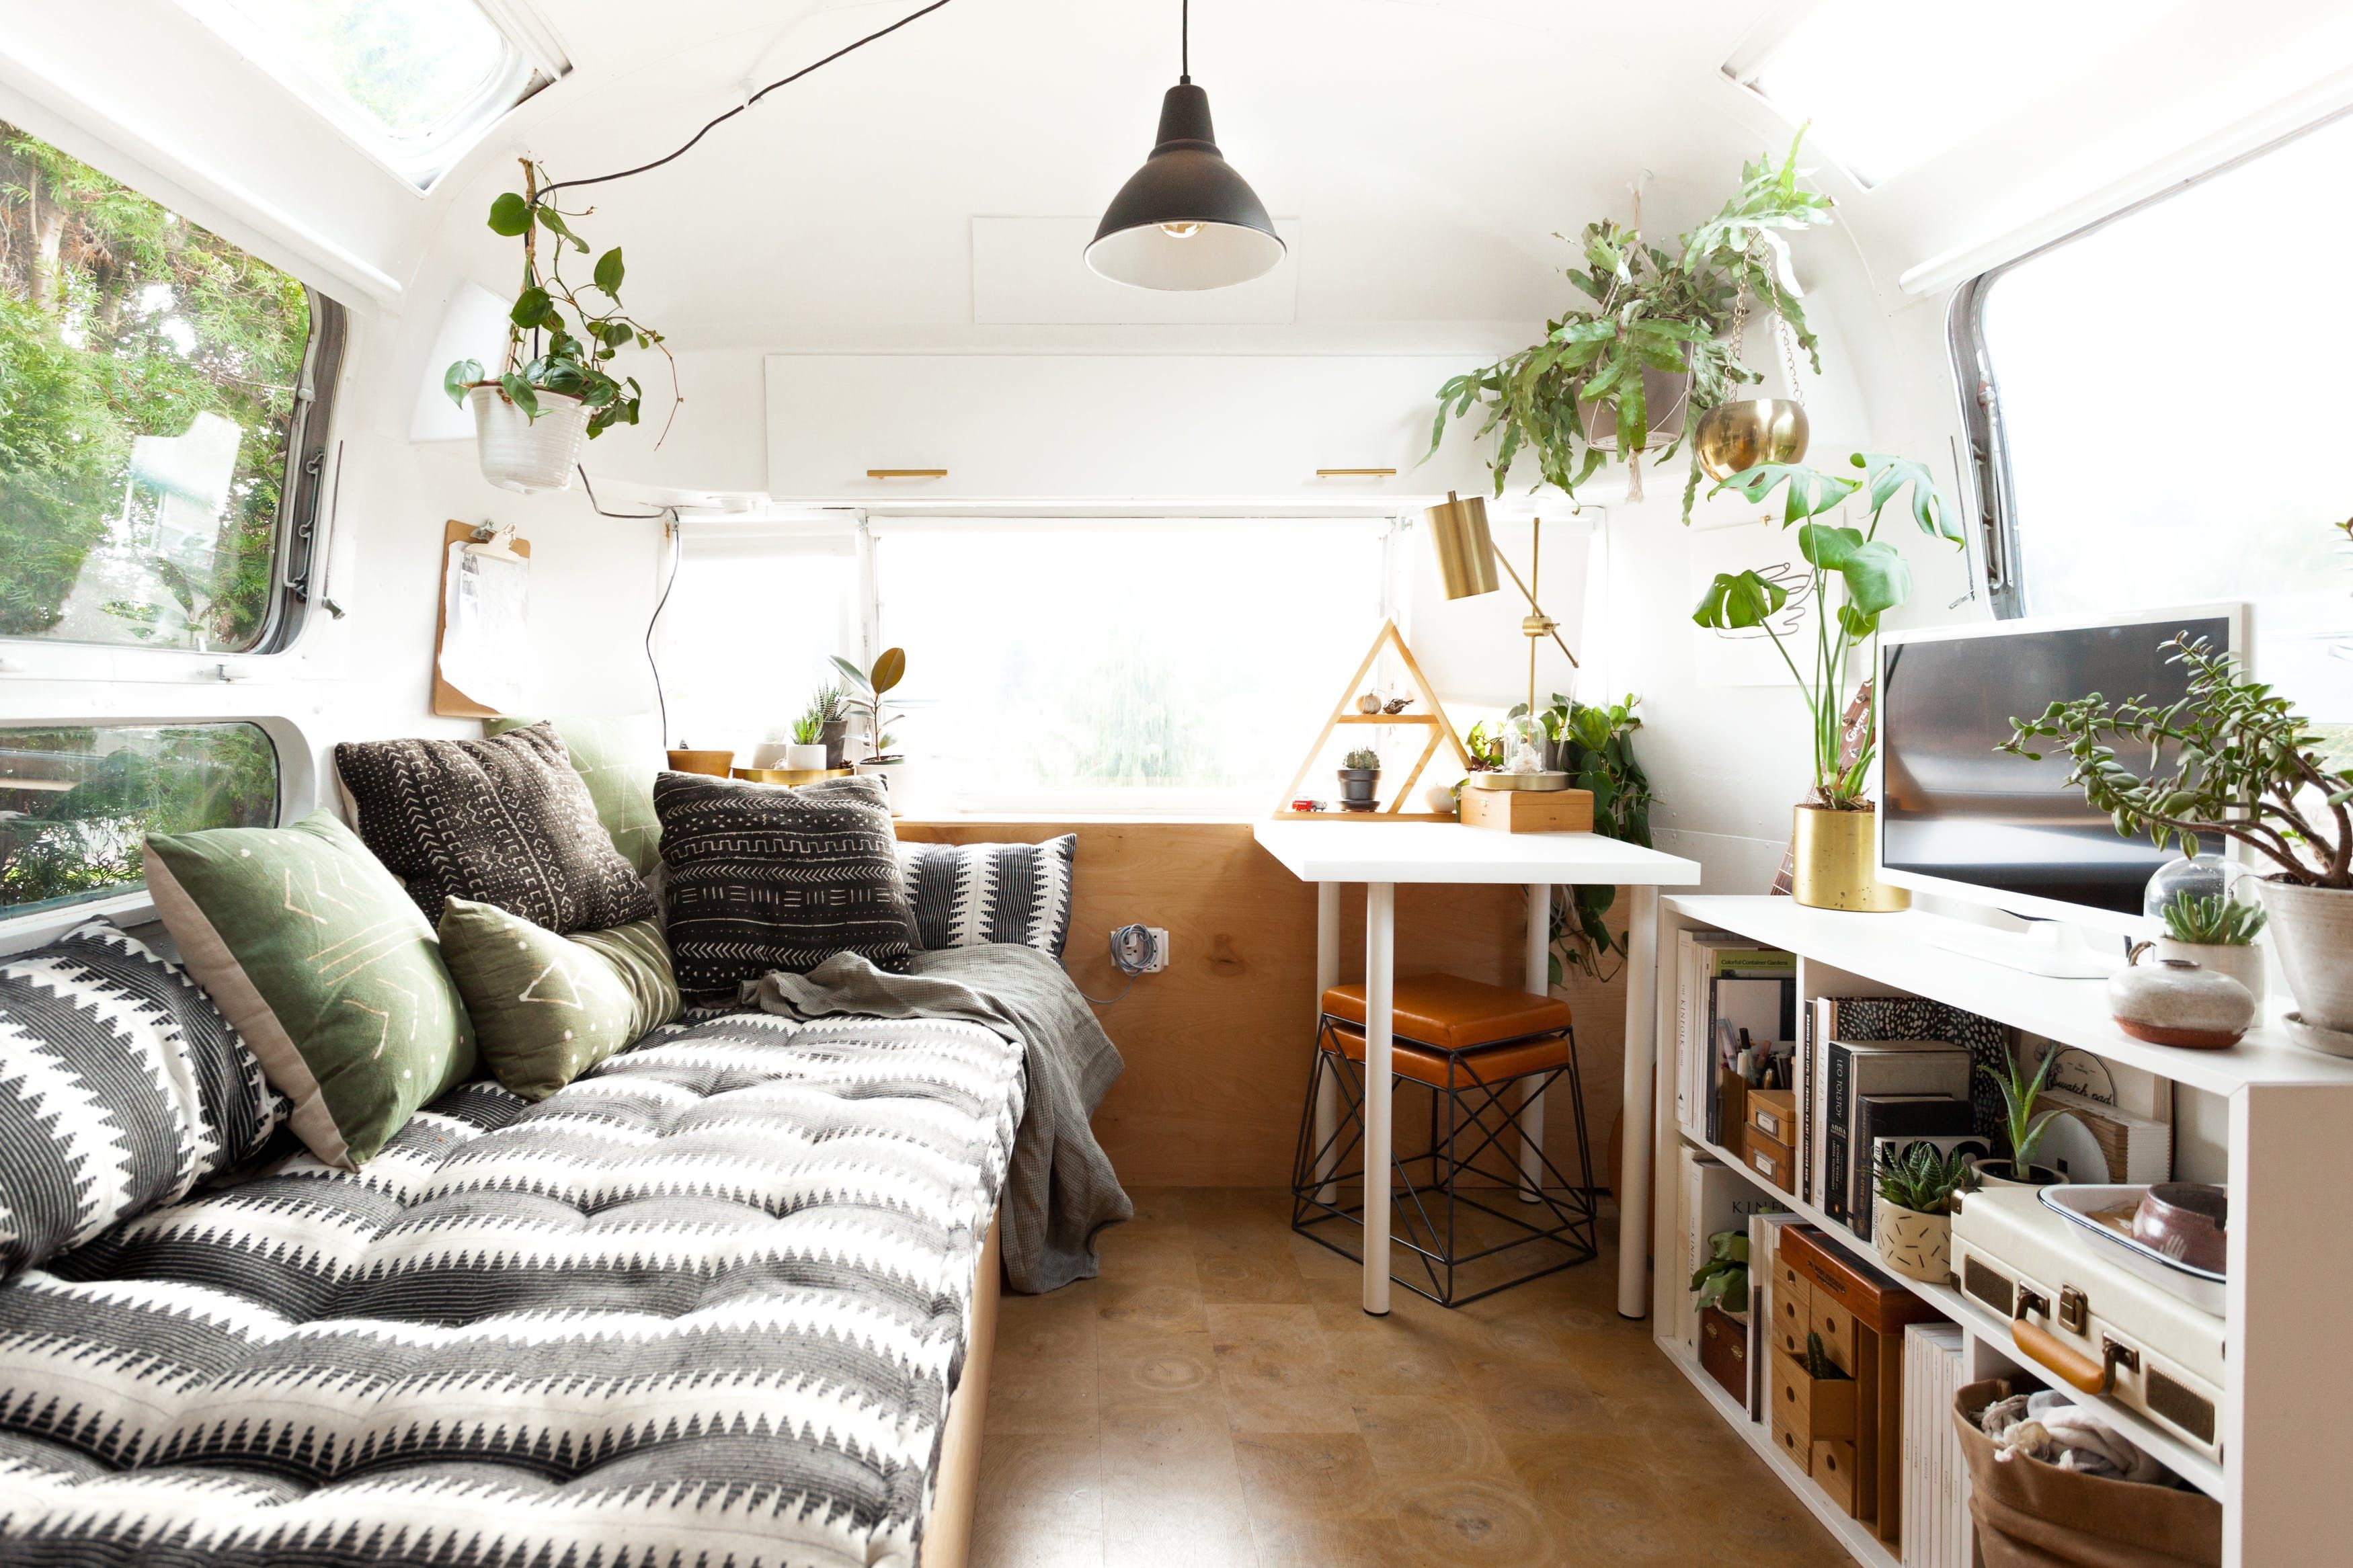 Tour a Vintage Airstream with a Scandi Inspired Remodel | Airstream ...